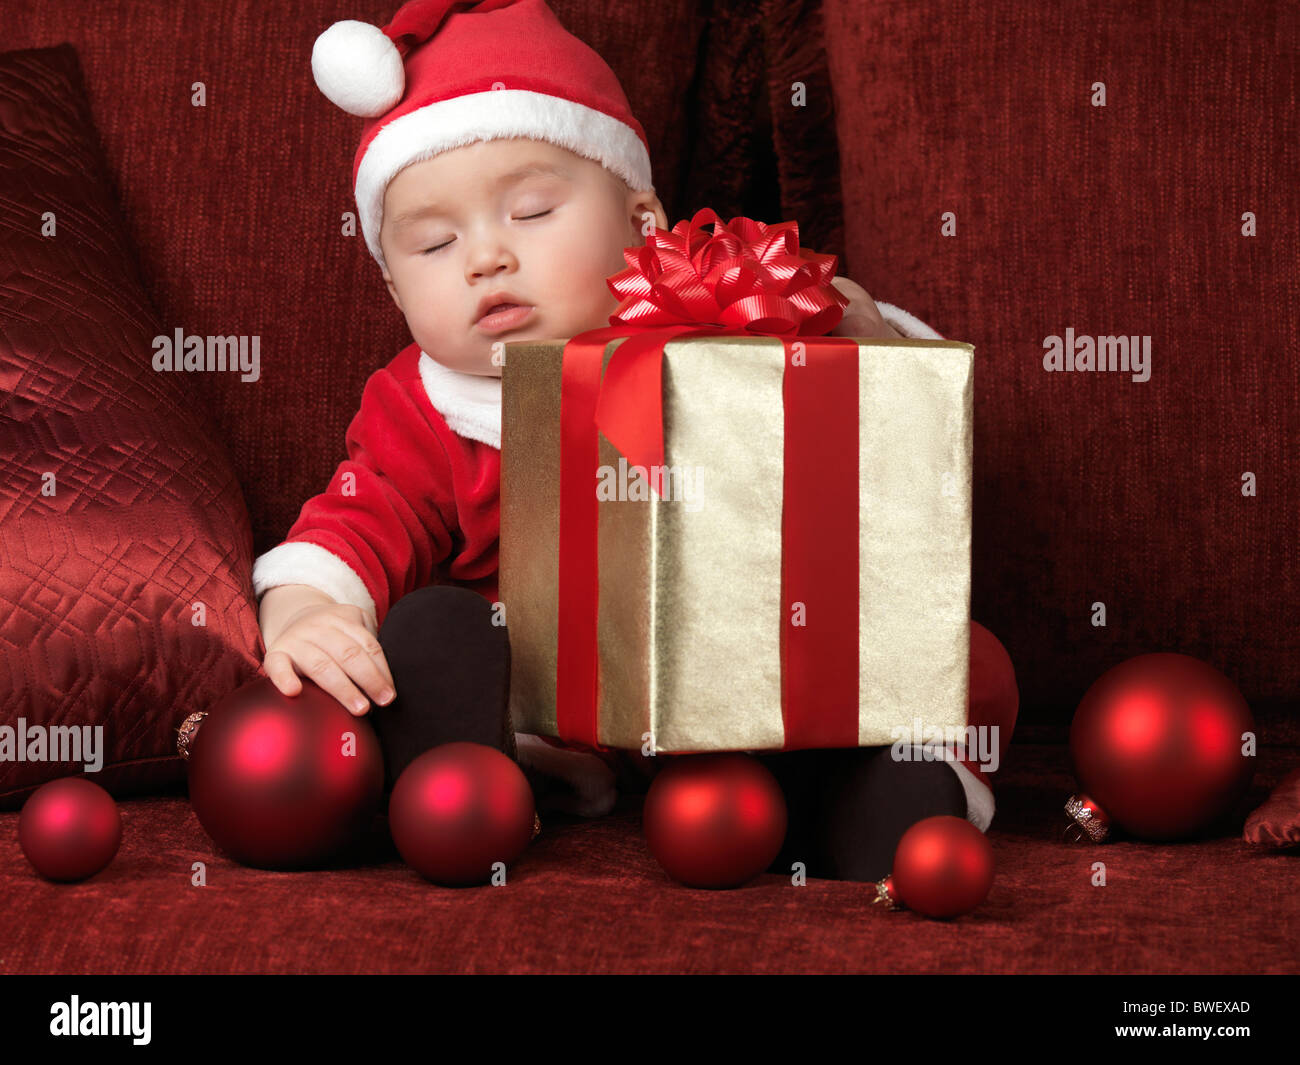 Six month old baby boy in Santa costume sleeping with a Christmas present in his lap - Stock Image